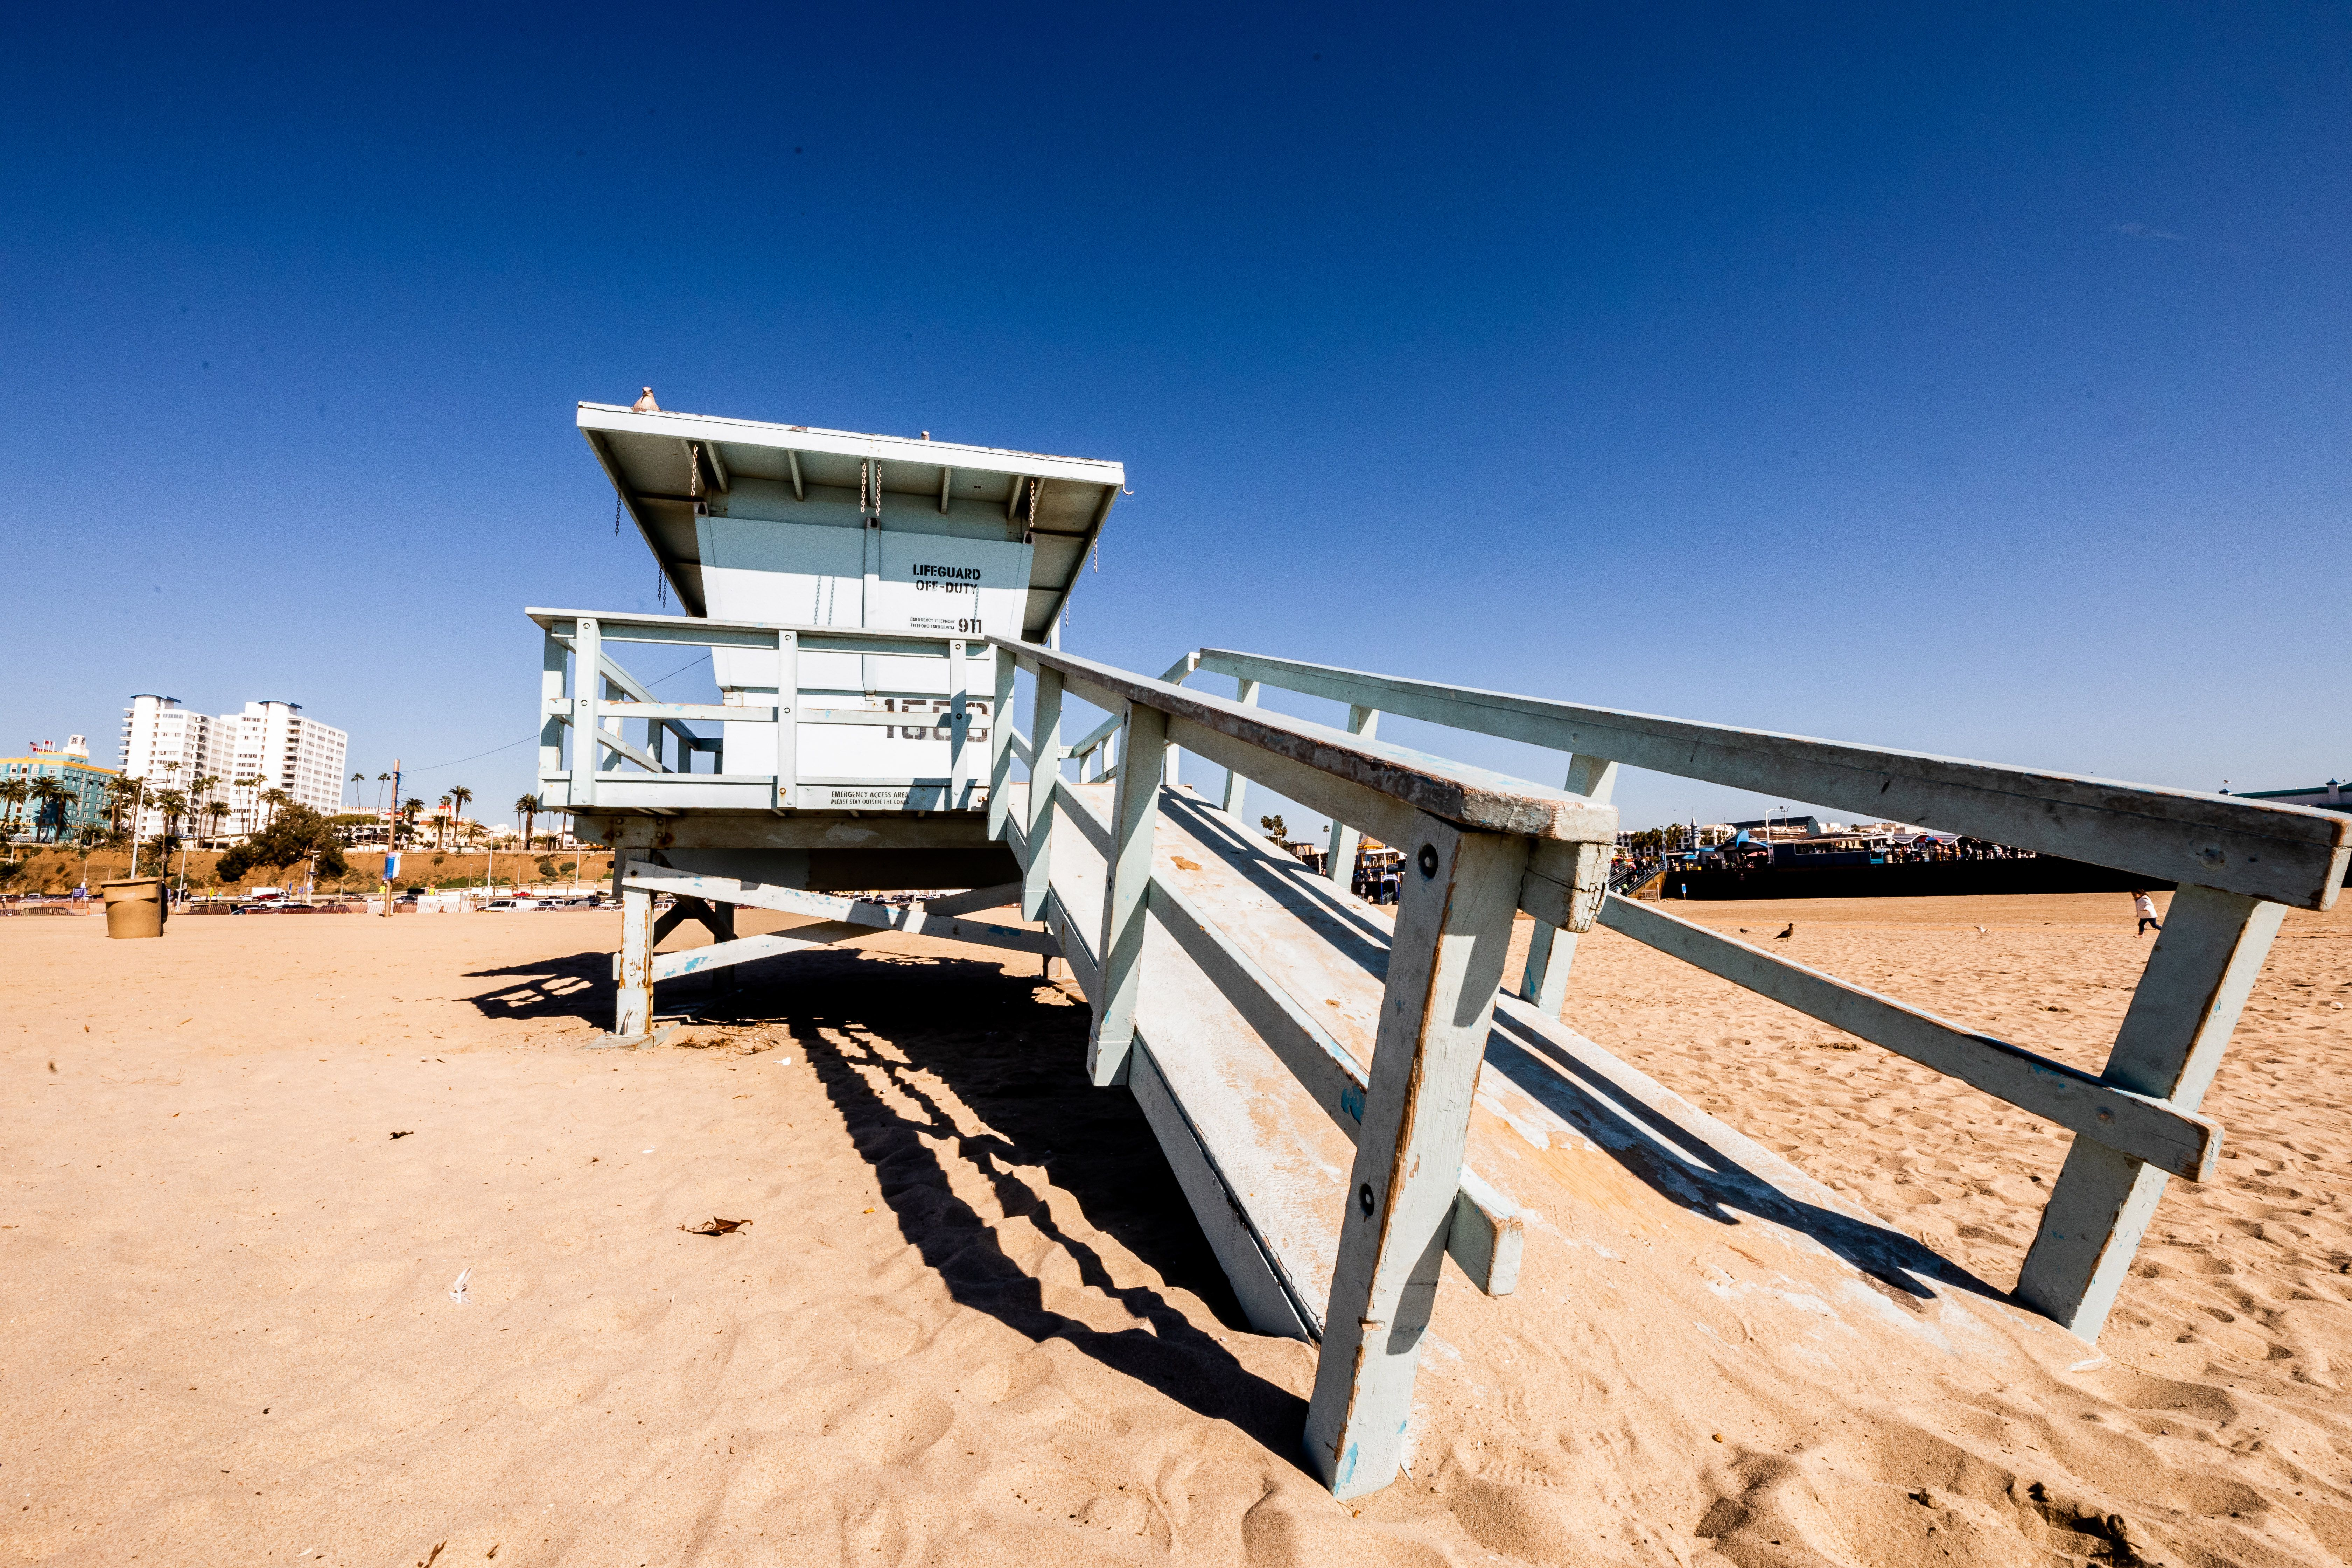 A lifeguard stand on the beach